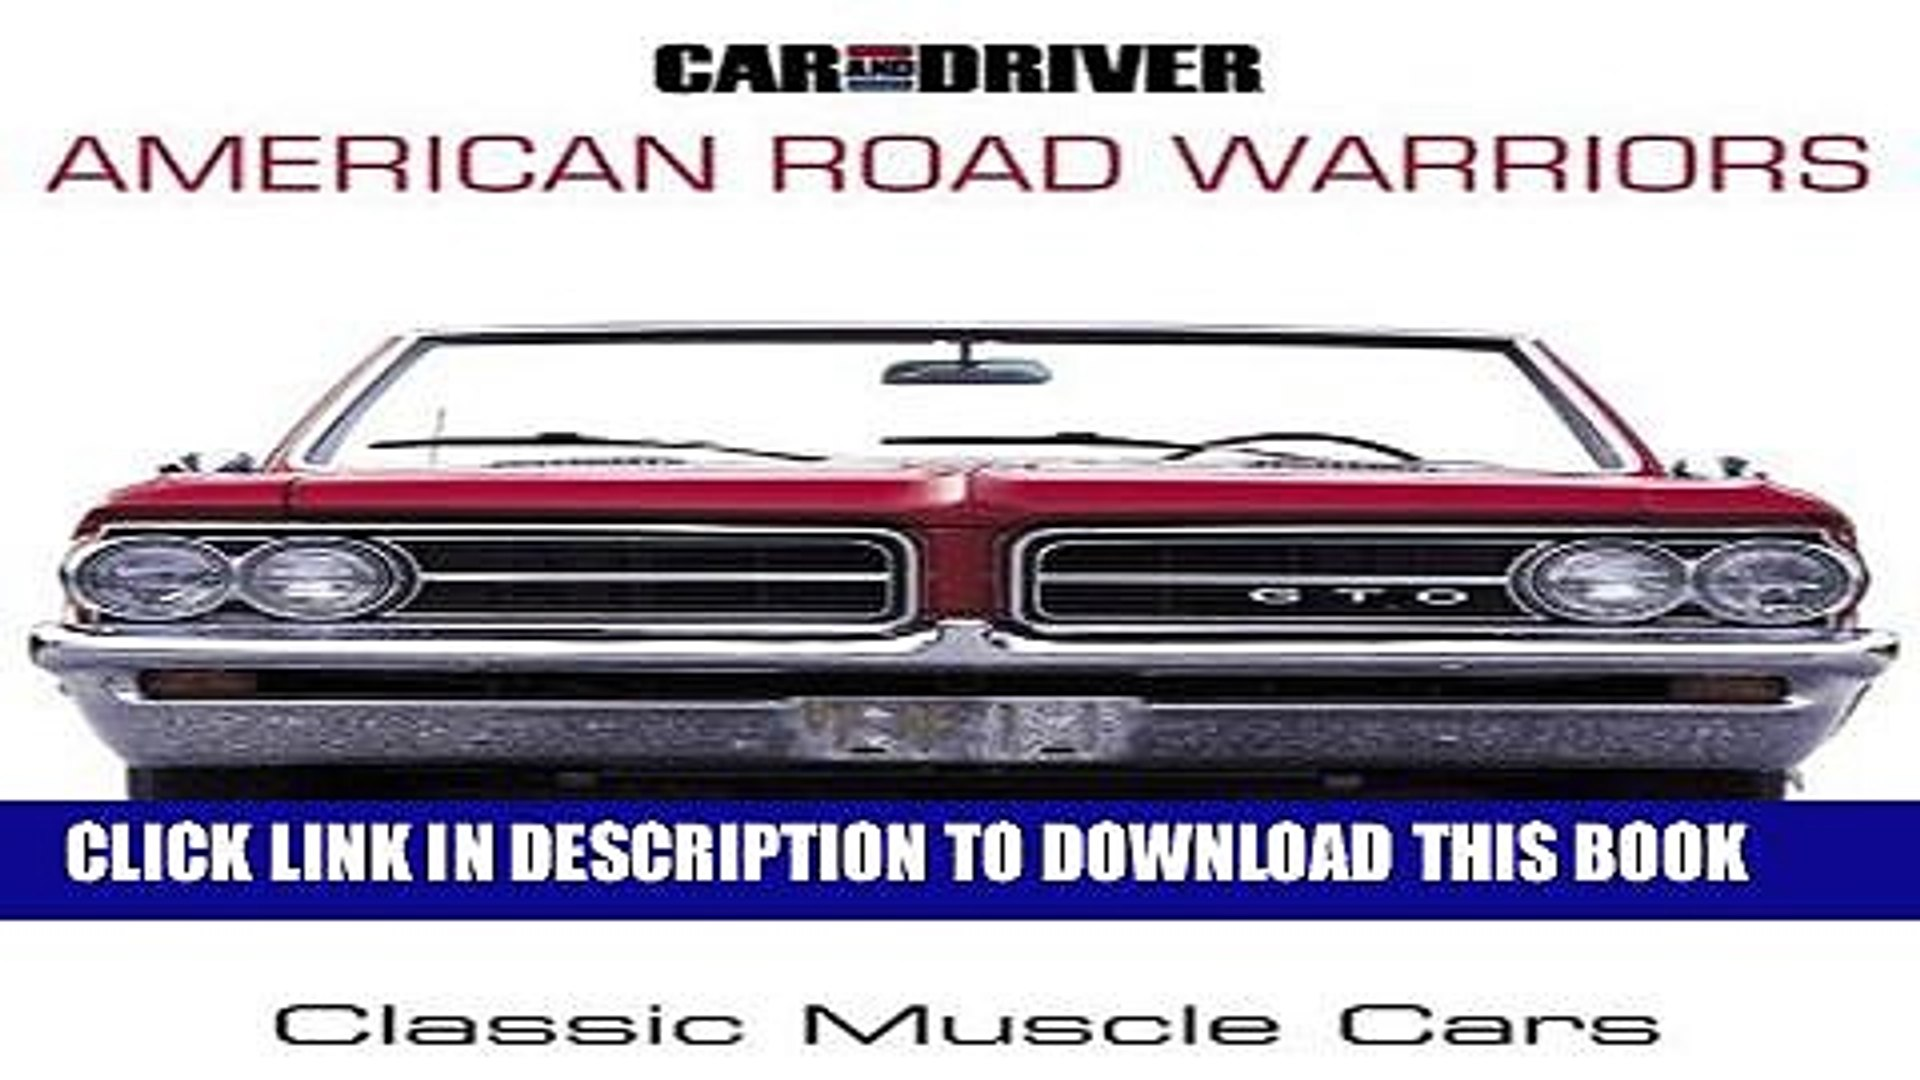 [PDF] FREE Car and Driver s American Road Warriors: Classic Muscle Cars [Download] Online